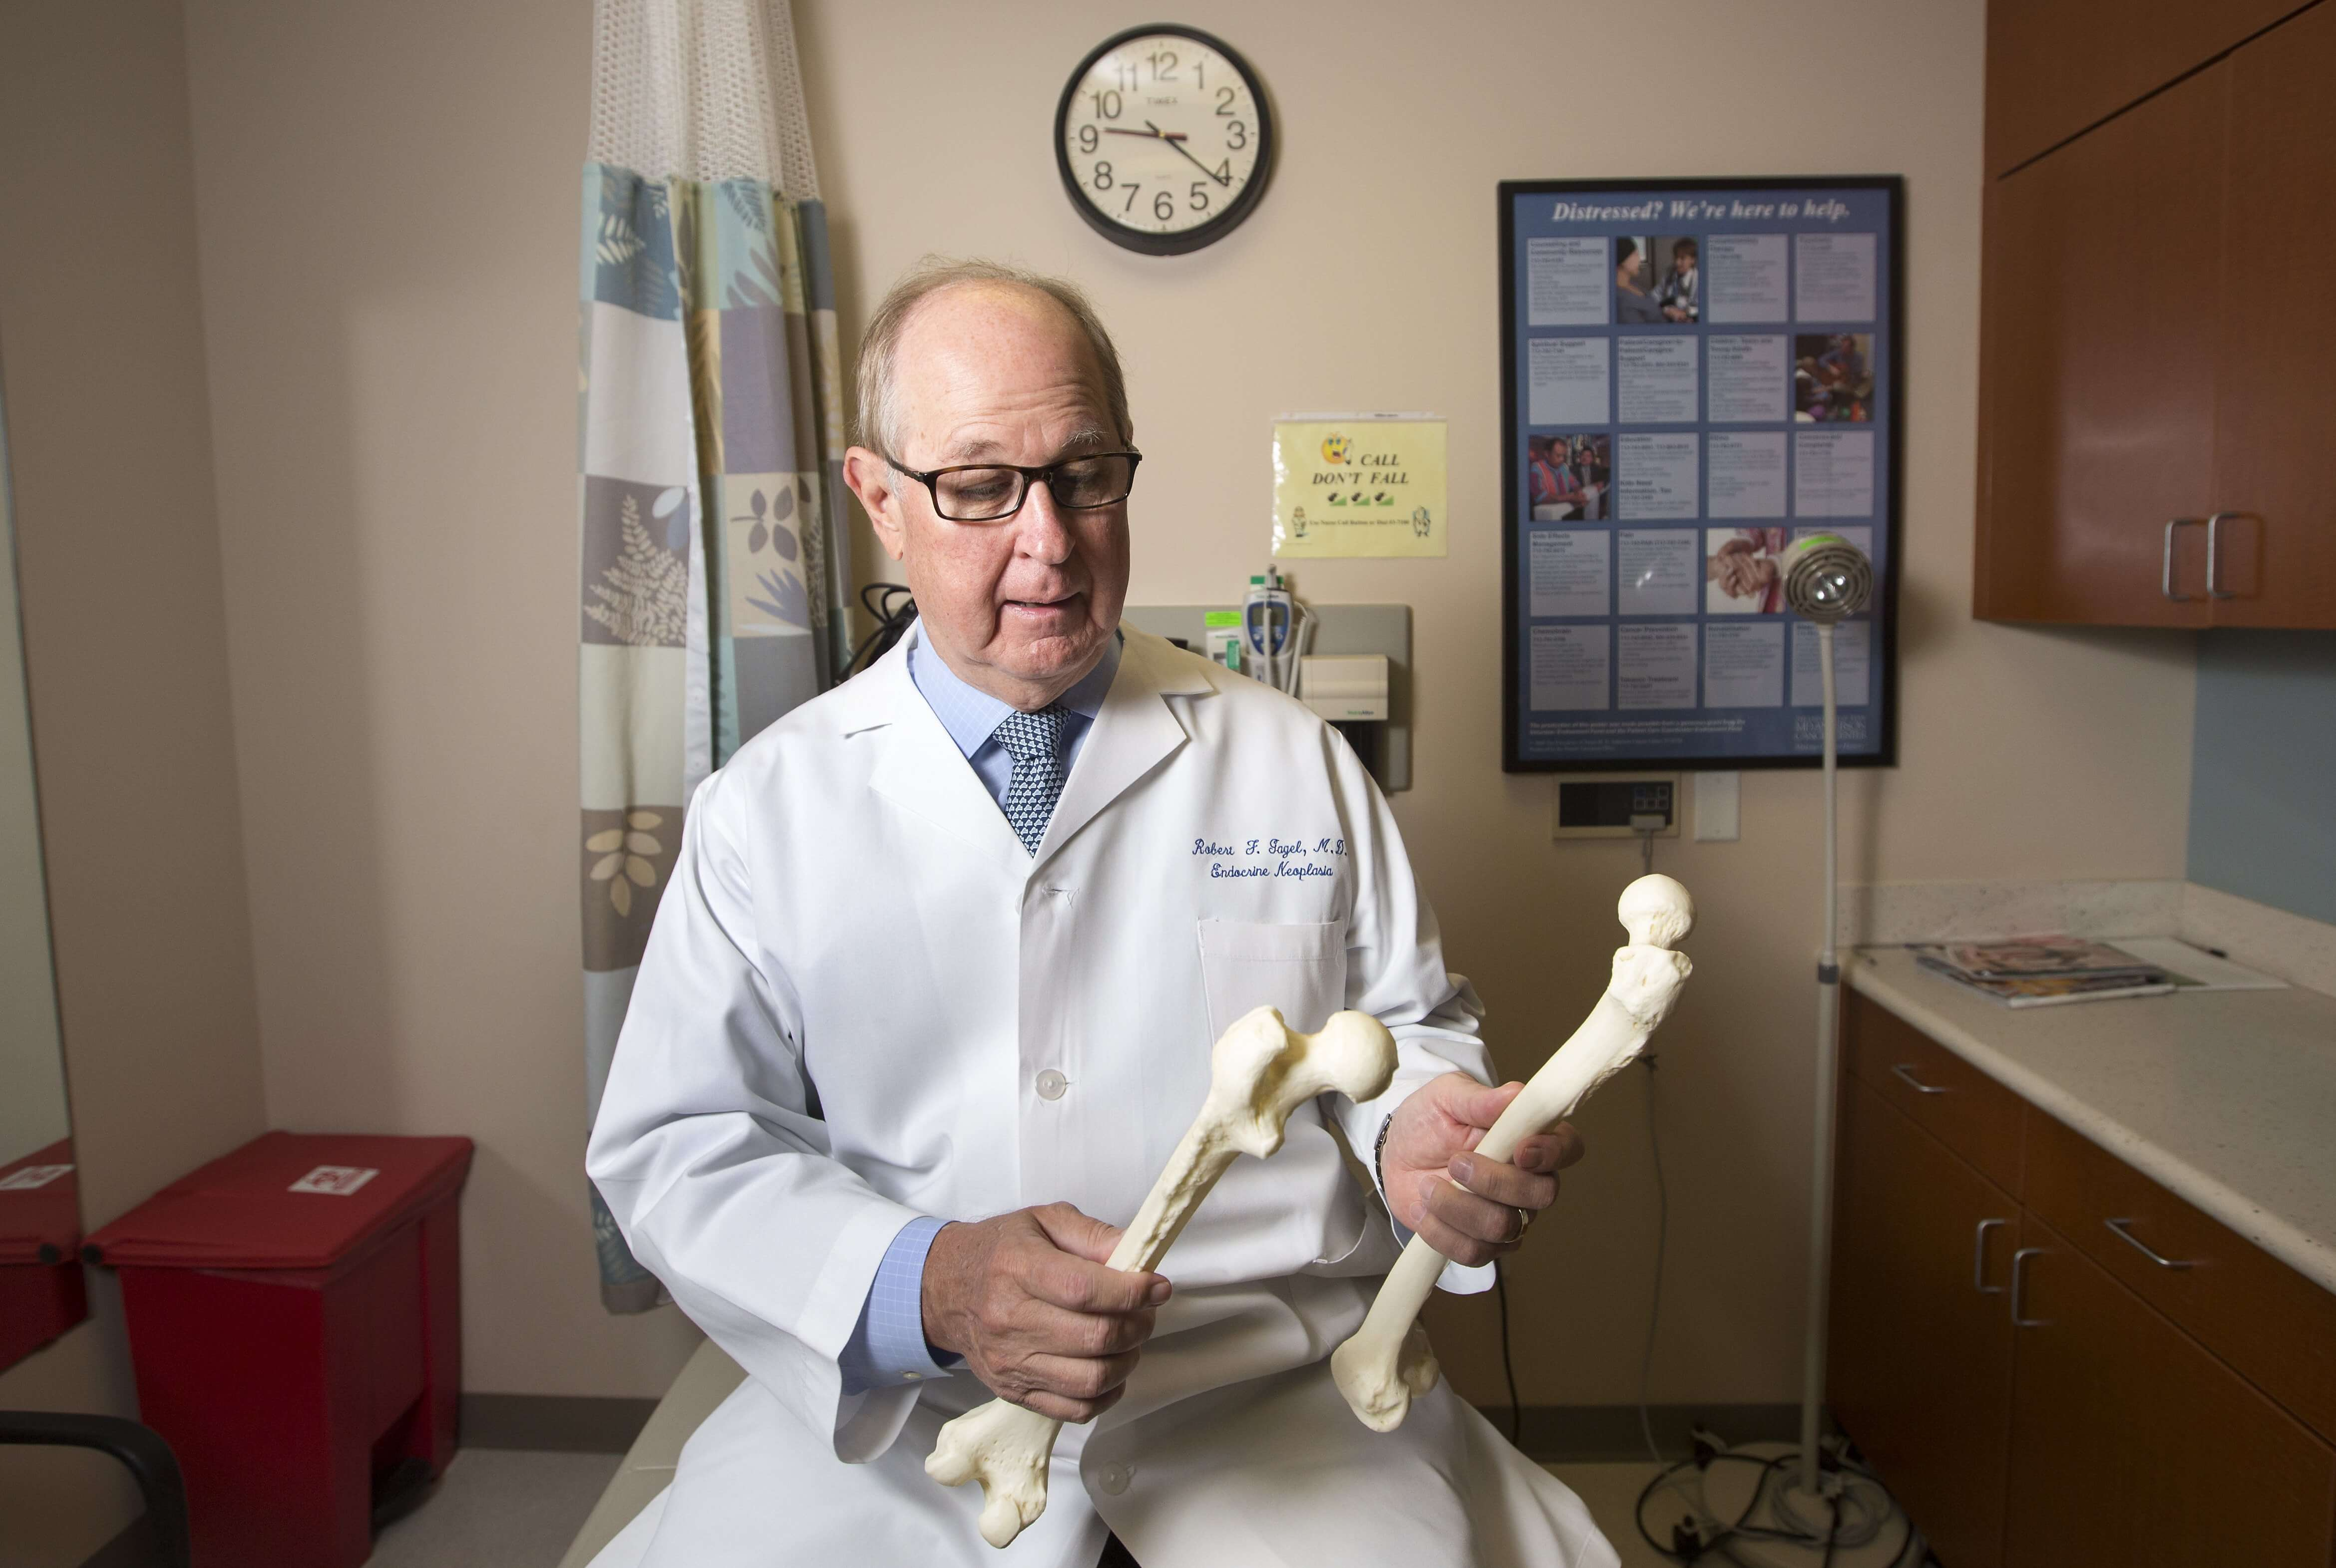 Robert Gagel, M.D., head of internal medicine at The University of Texas MD Anderson Cancer Center and co-director of the Rolannette and Berdon Lawrence Bone Disease Program of Texas.